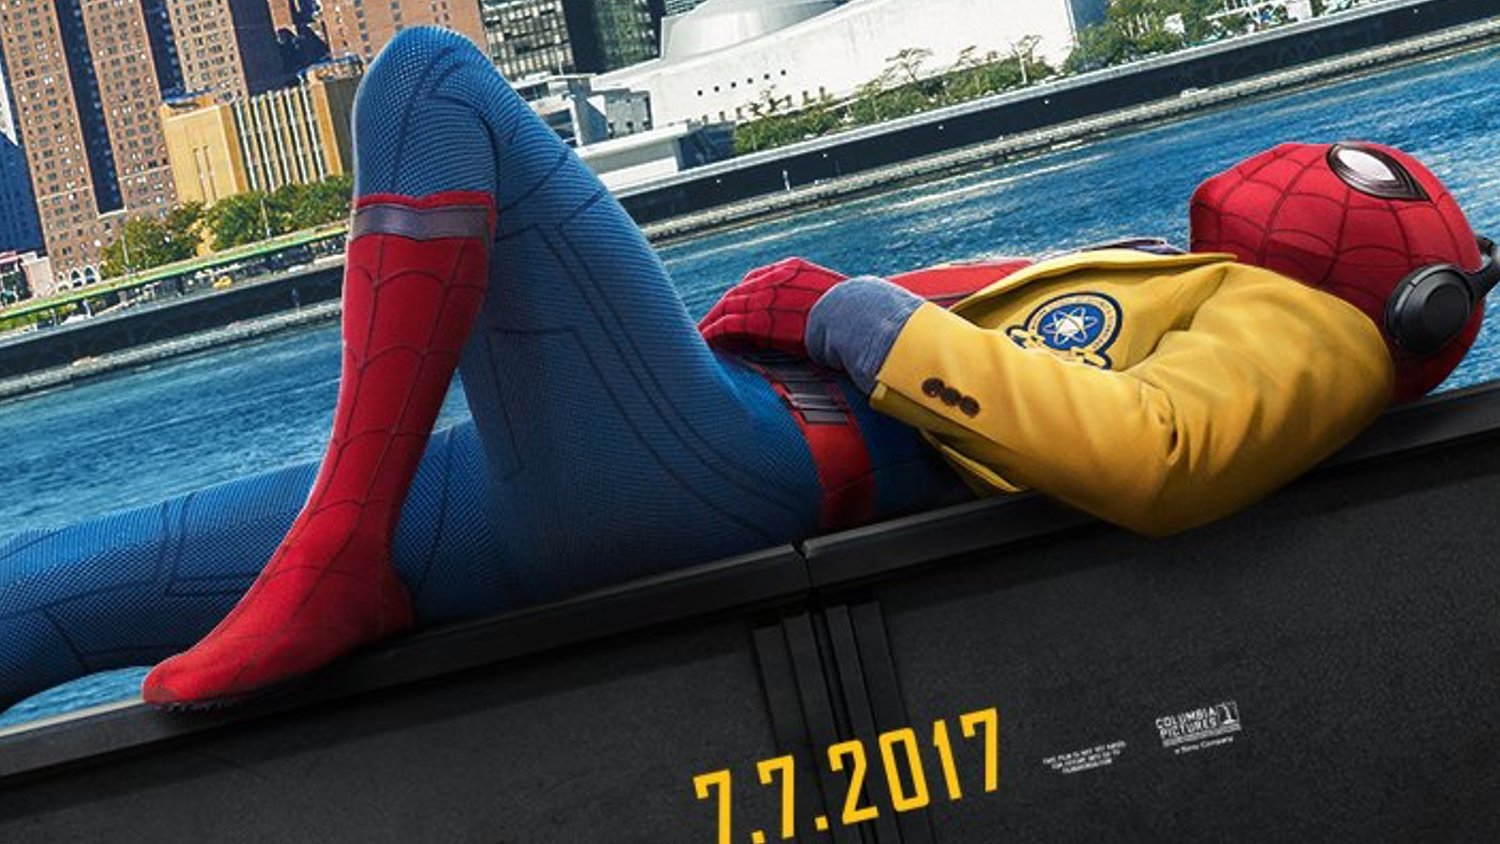 New SPIDER-MAN: HOMECOMING Poster Features Spider-Man Kickin' It in NYC